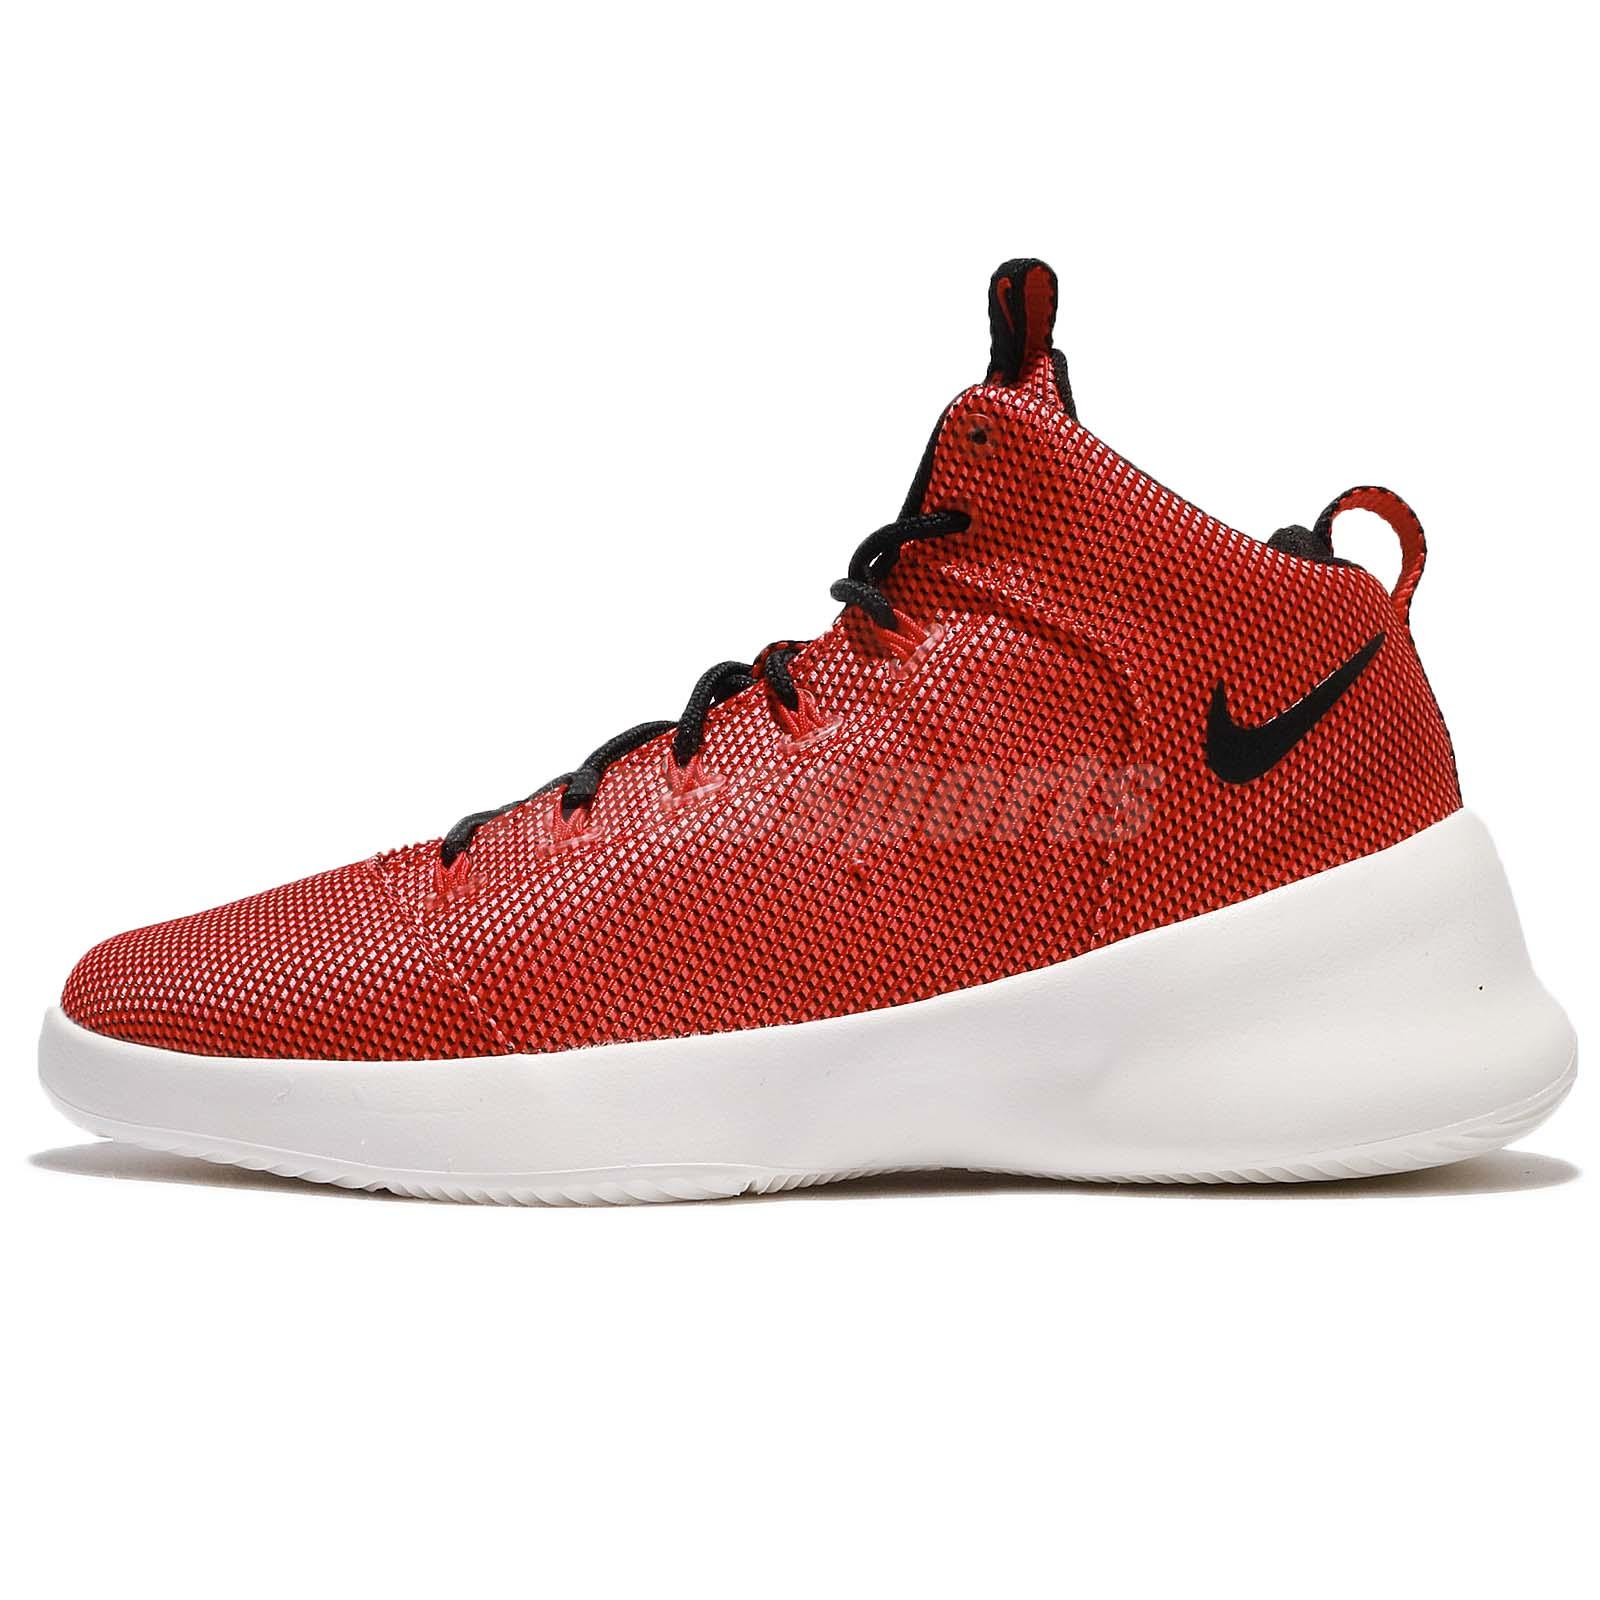 33b7e5f19f4113 Nike Hyperfresh Red